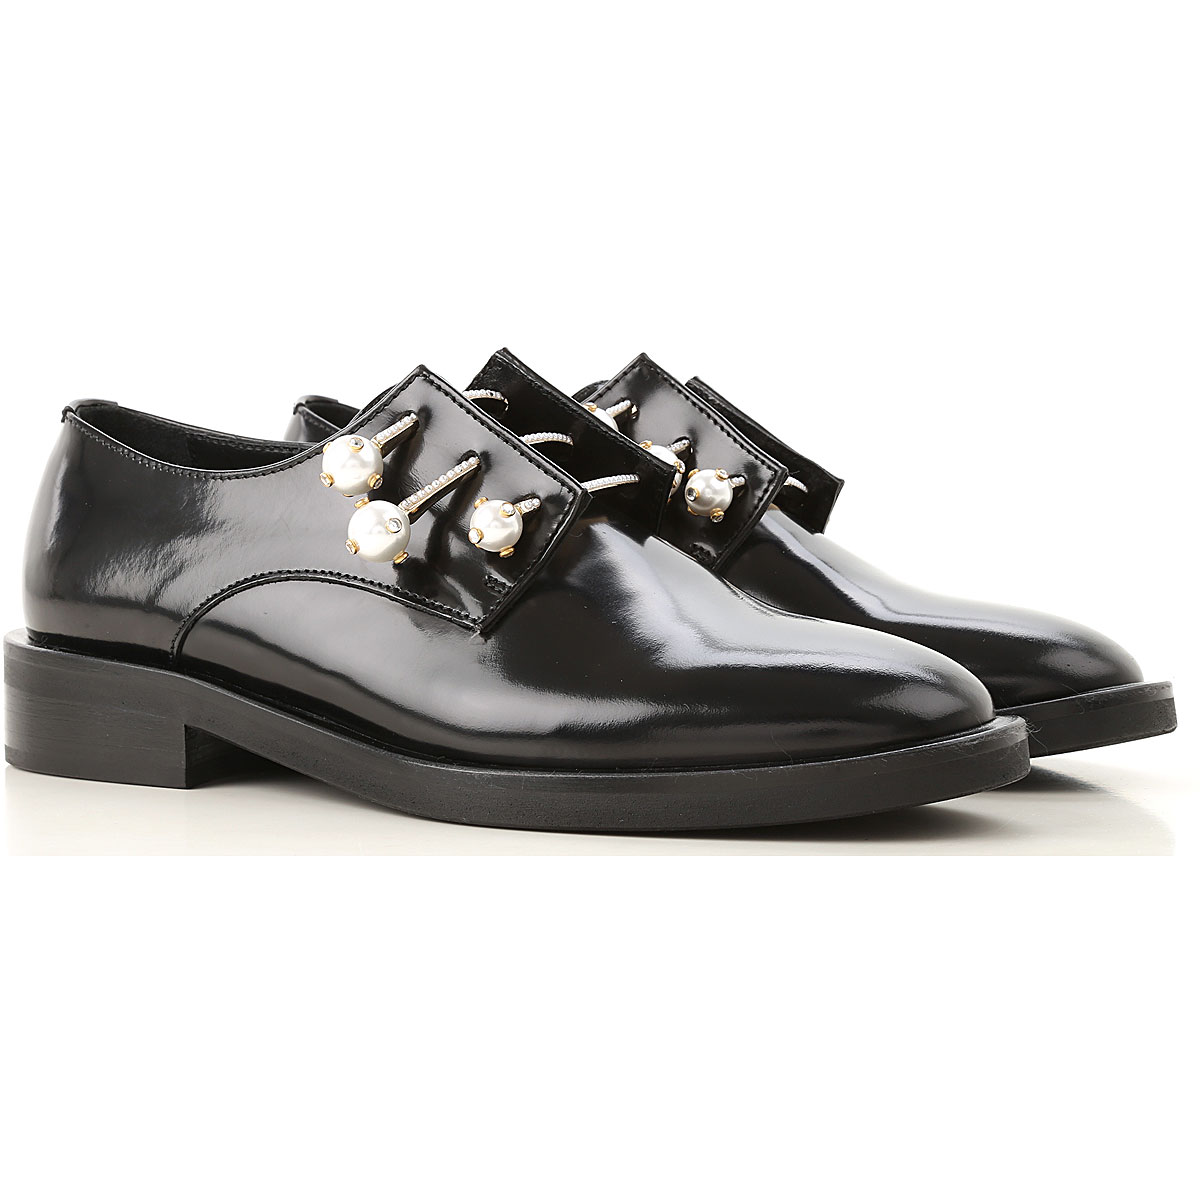 Image of Coliac Lace Up Shoes for Men Oxfords, Derbies and Brogues, Black, Patent Leather, 2017, 6 7 8 9